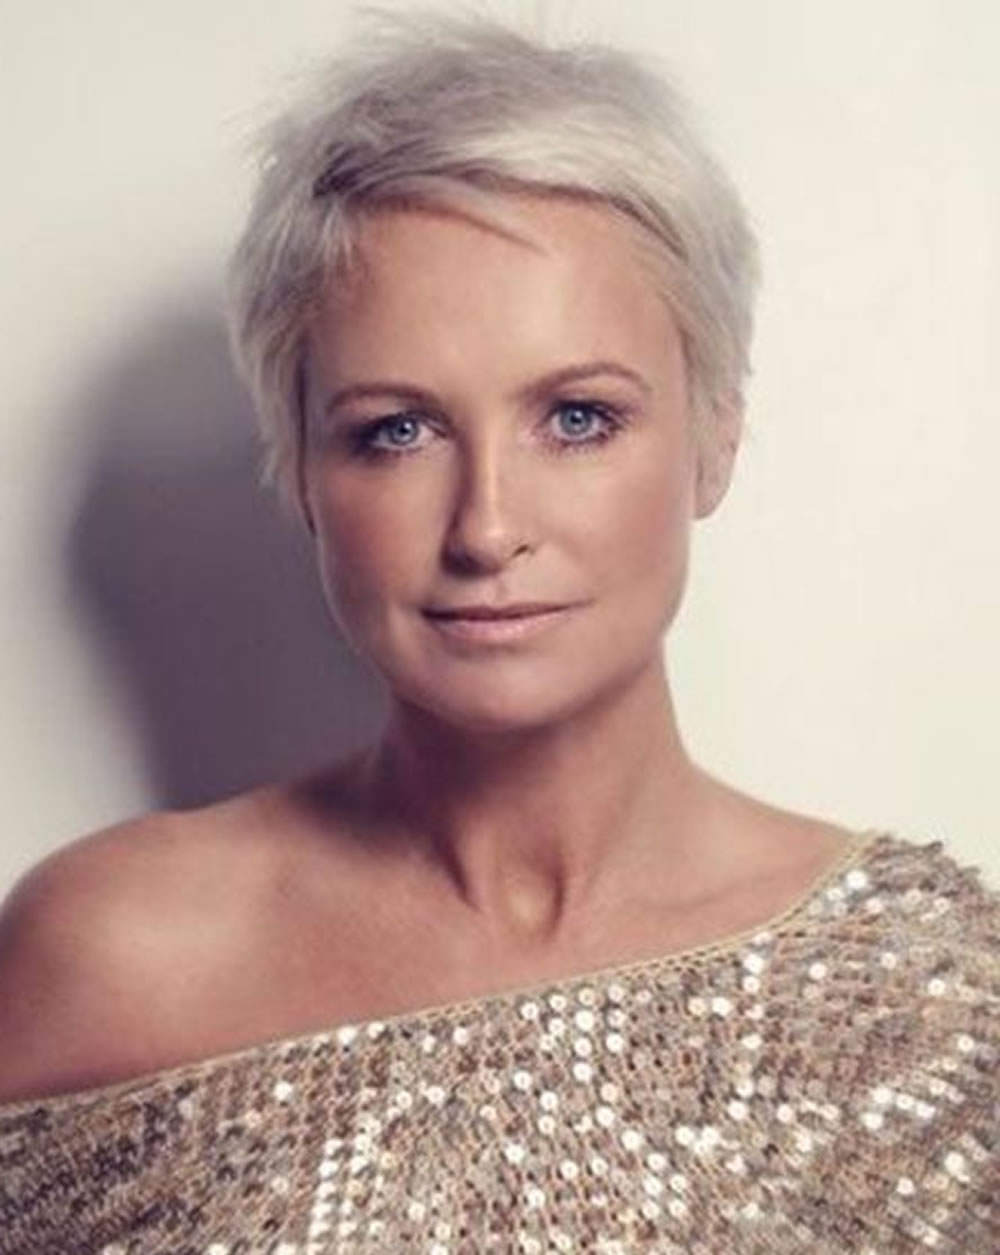 30 Easy Short Hairstyles For Older Women – You Should Try! – Hairstyles Throughout Short Hairstyles For Mature Woman (View 10 of 25)